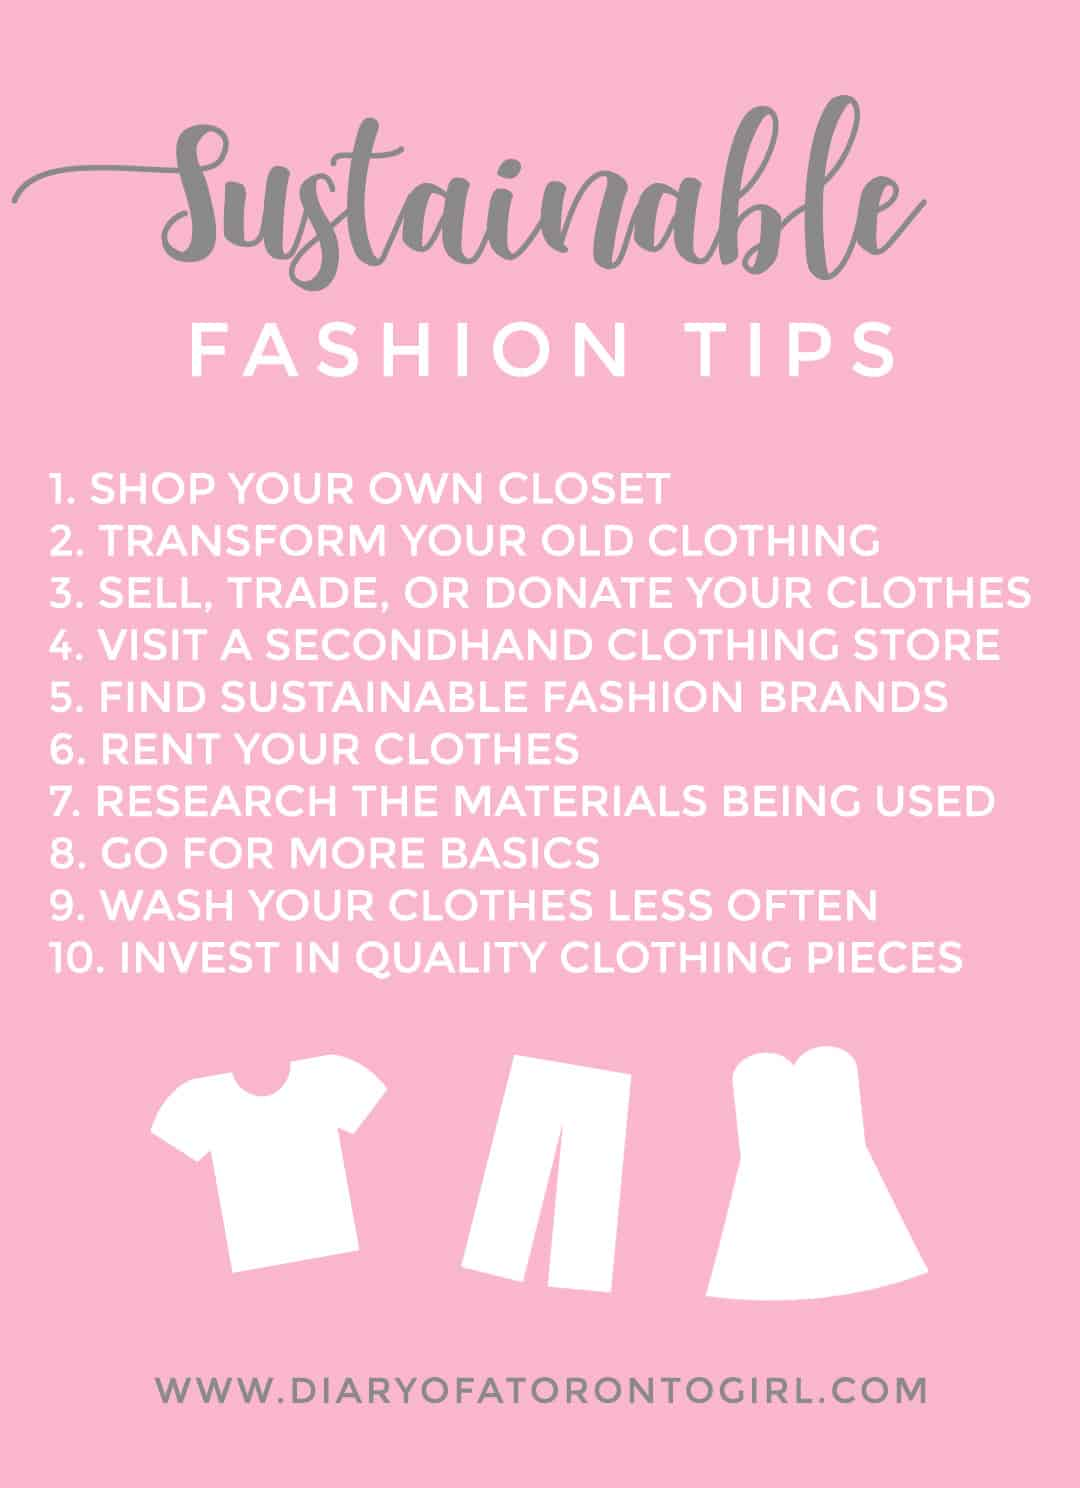 Fast fashion is extremely damaging to the environment – here are some of my tips on how to make more sustainable fashion and shopping decisions!